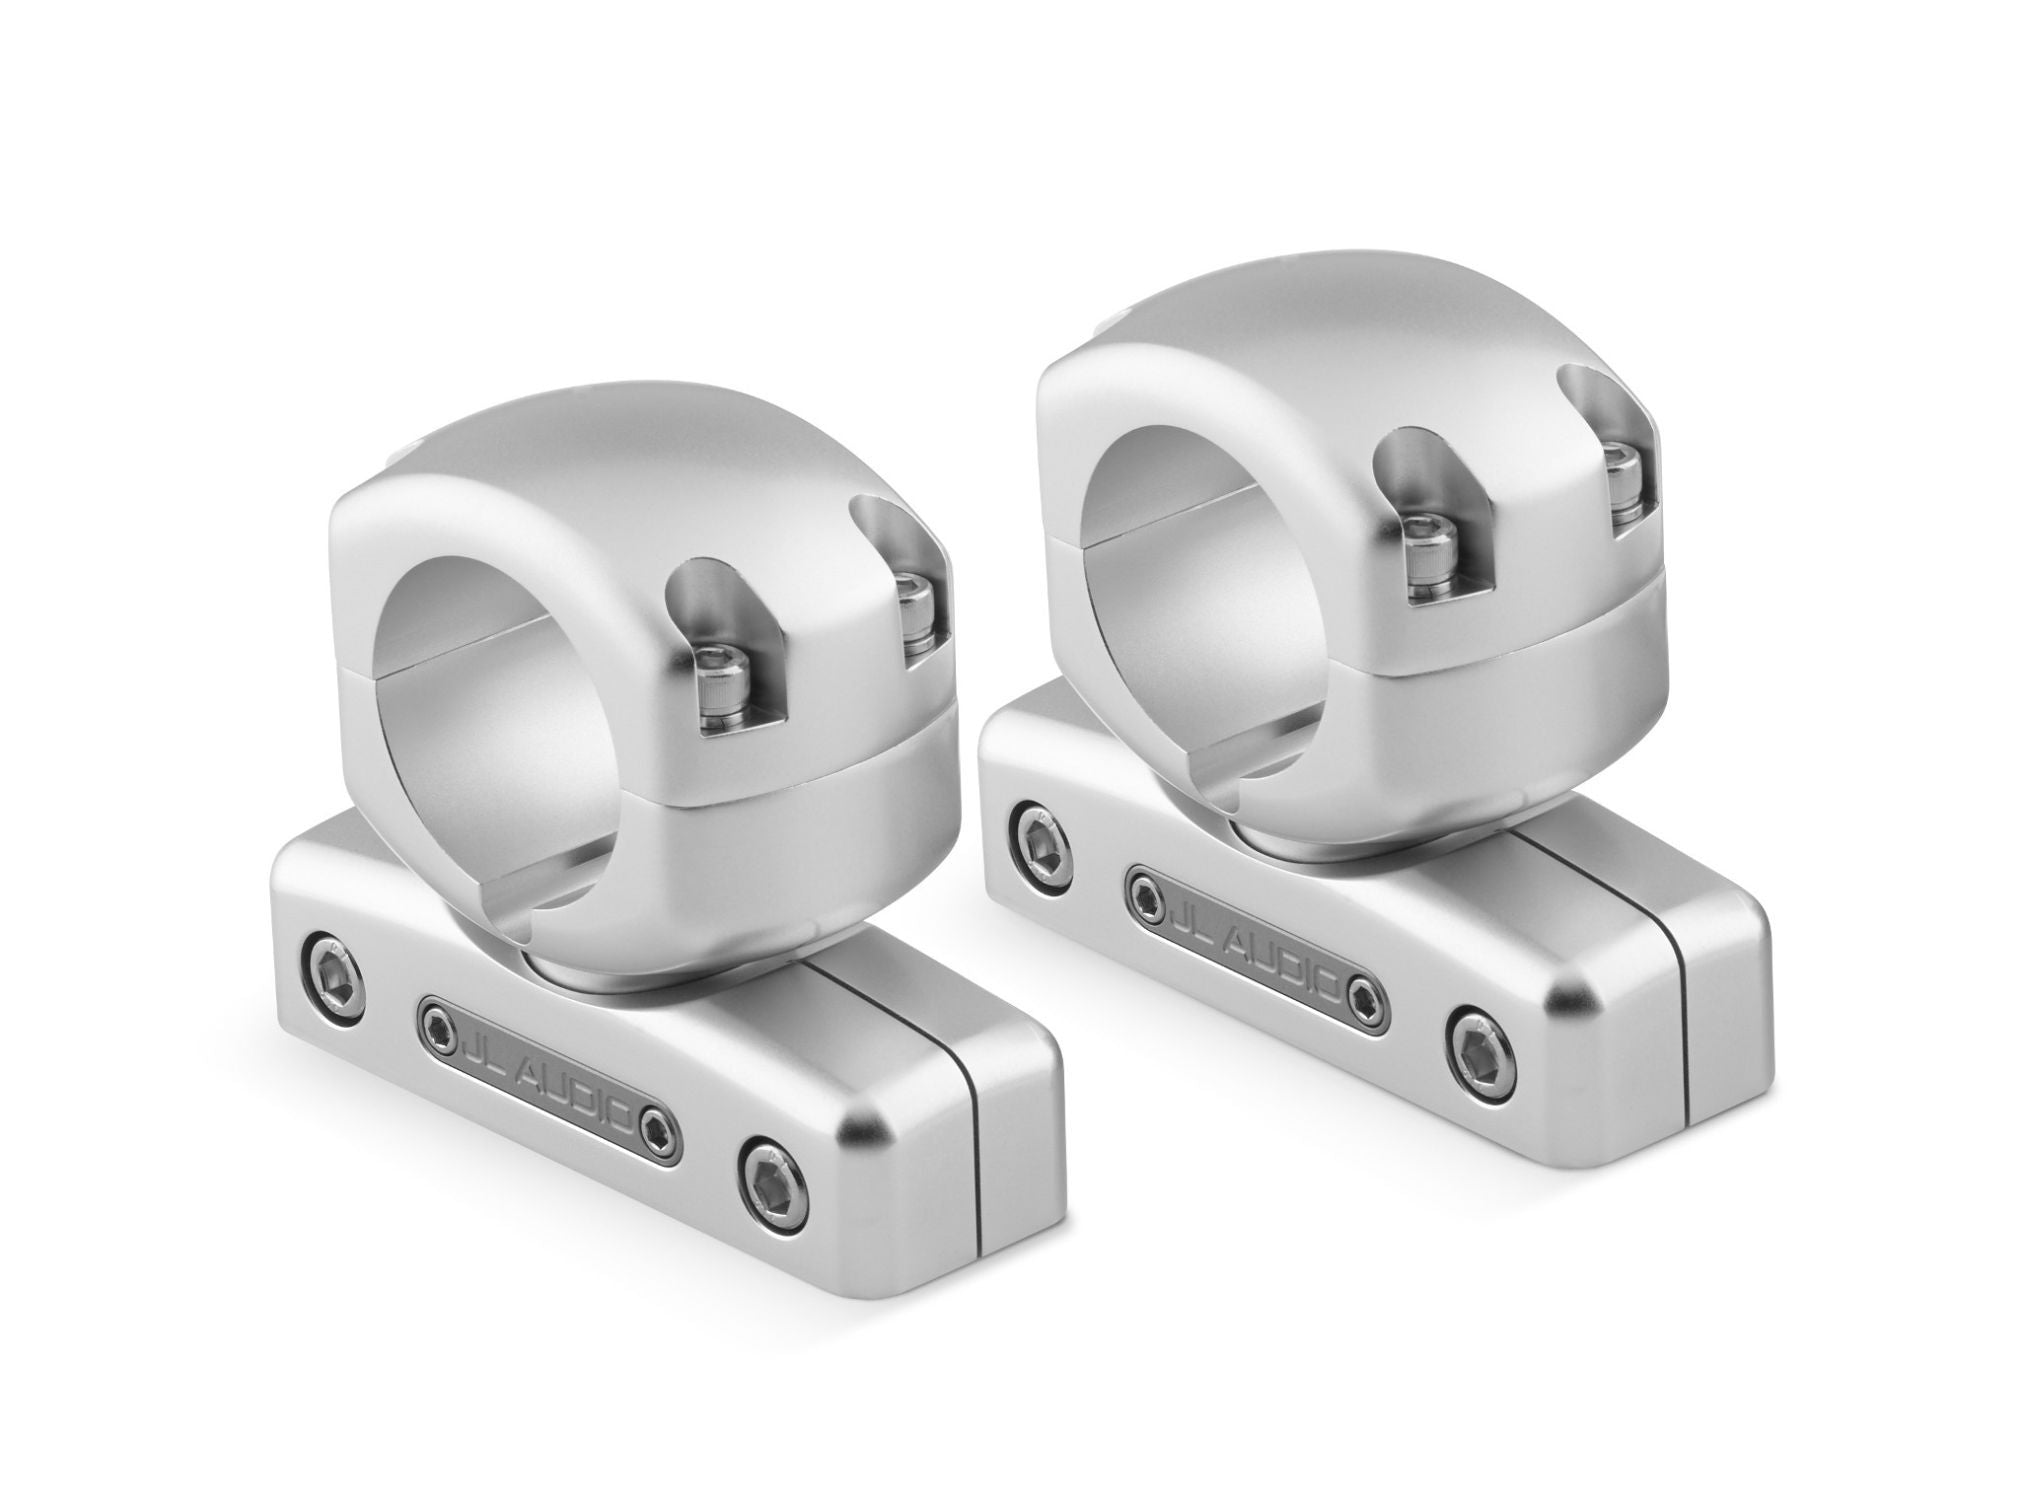 M-SWMCPv3-1-900 Swivel Mounting Clamp Pair